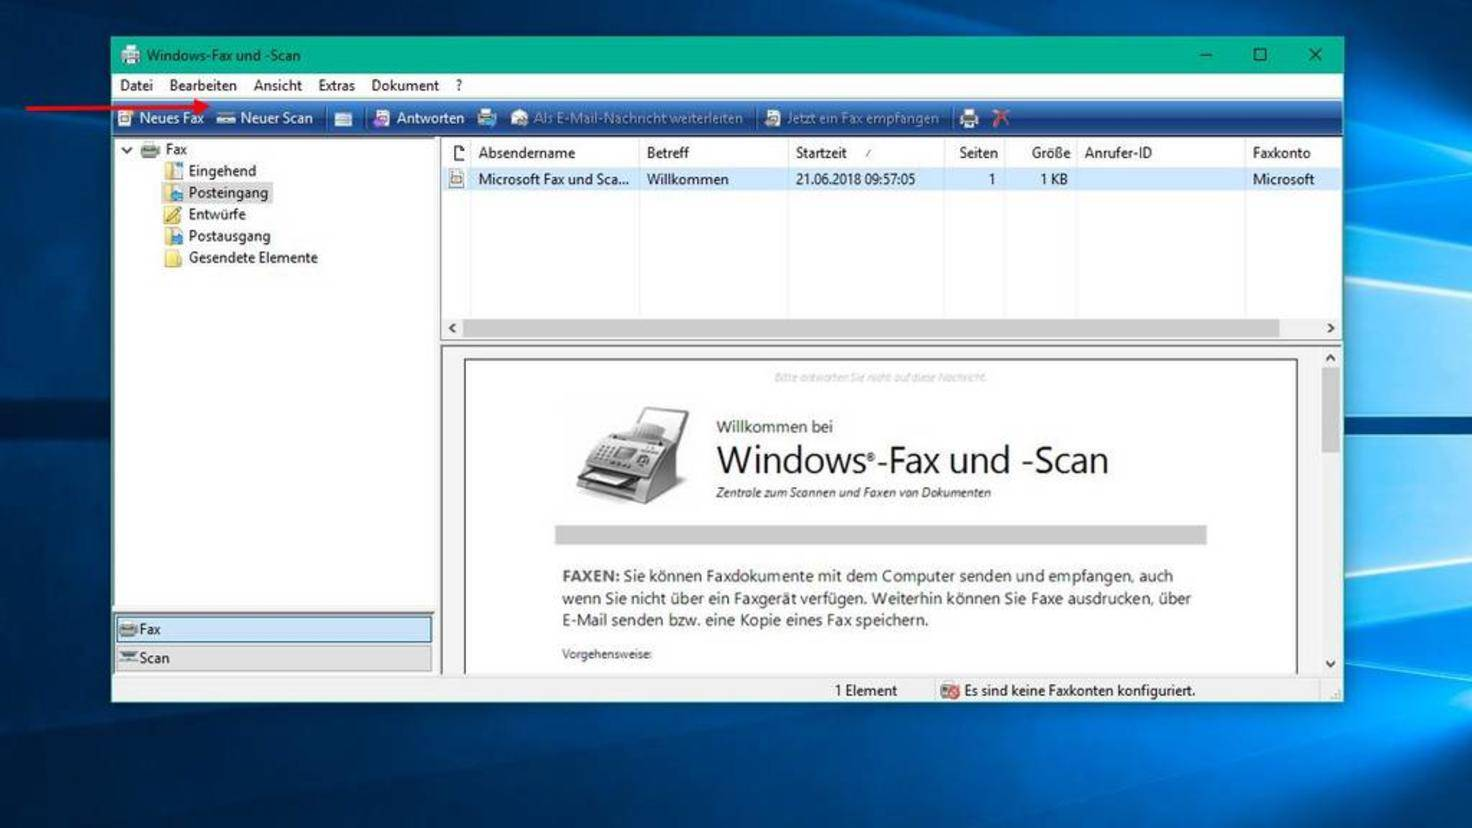 Windows-Fax-und-Scan